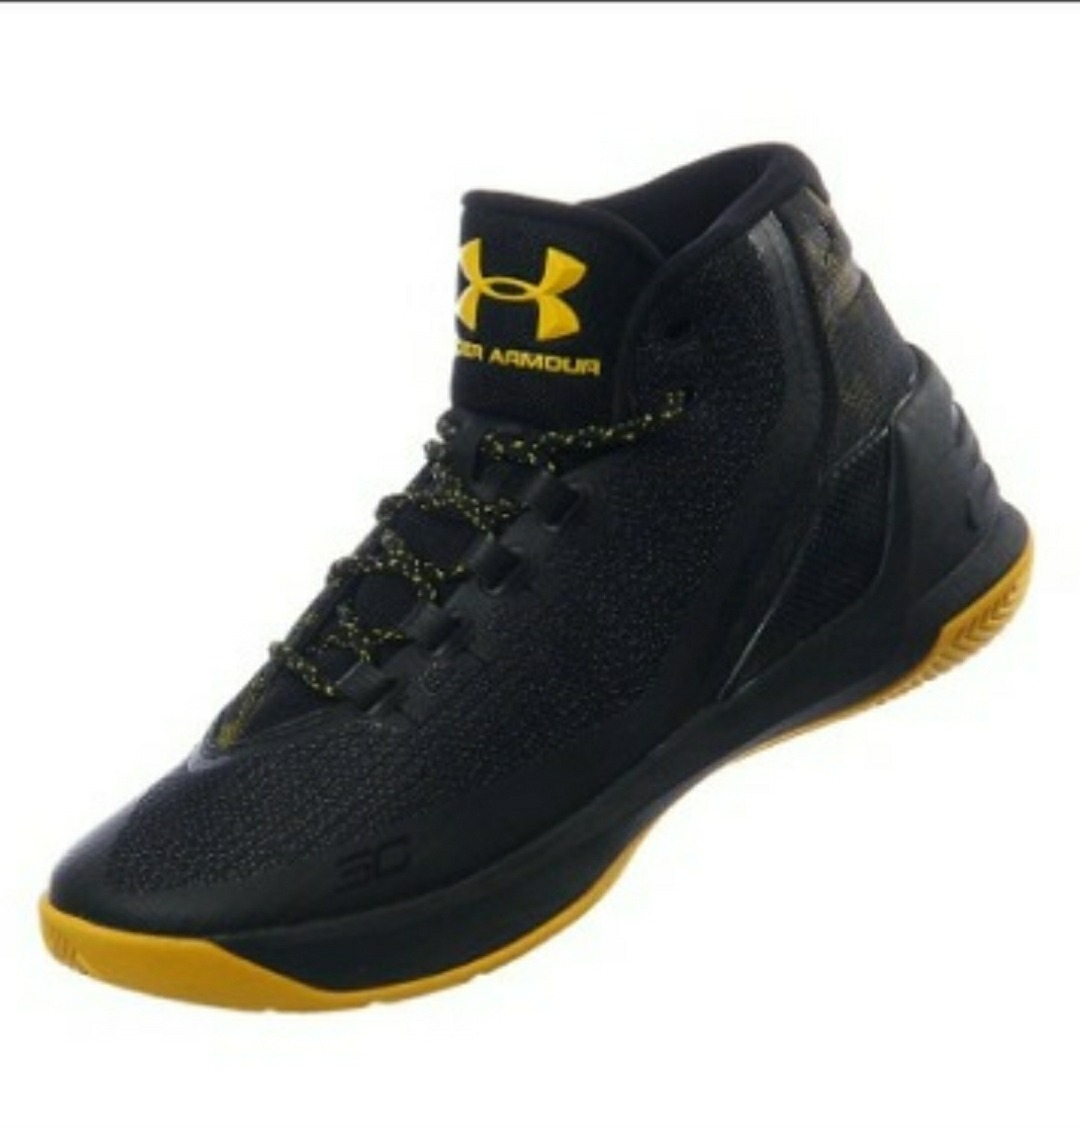 827420466f Zapatillas Under Armour Stephen Curry 3 10 Usa - $ 3.400,00 en ...